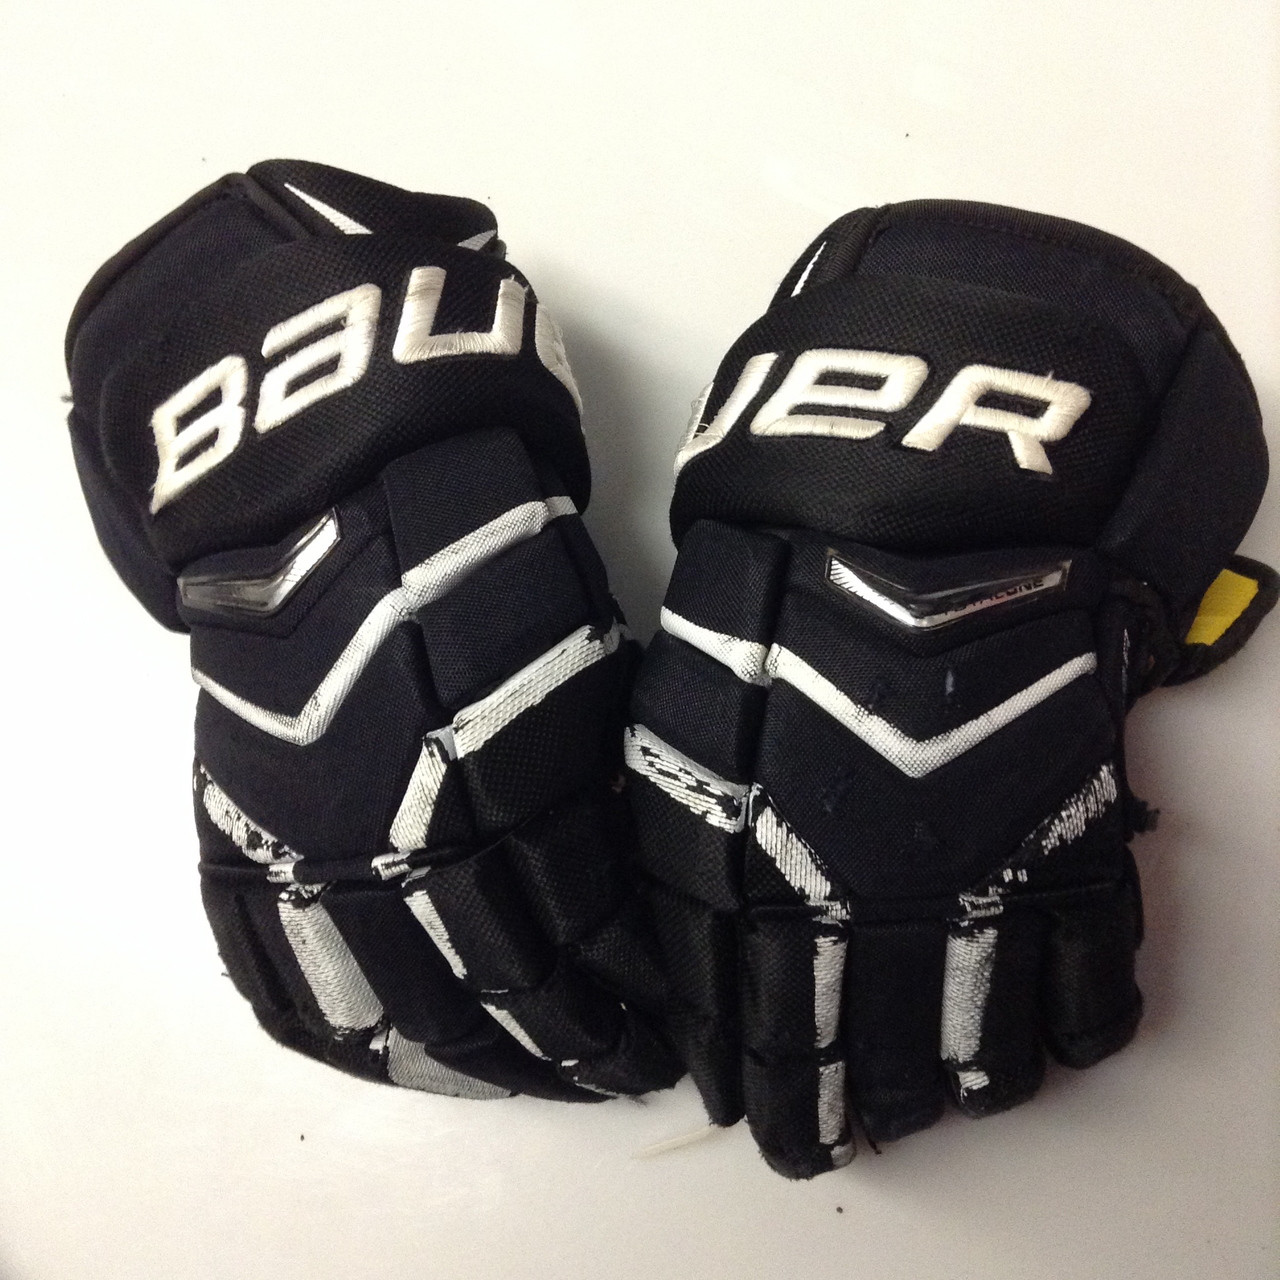 Bauer Supreme Totalone NXG Pro Custom Pro Stock Hockey Gloves Used Black  15